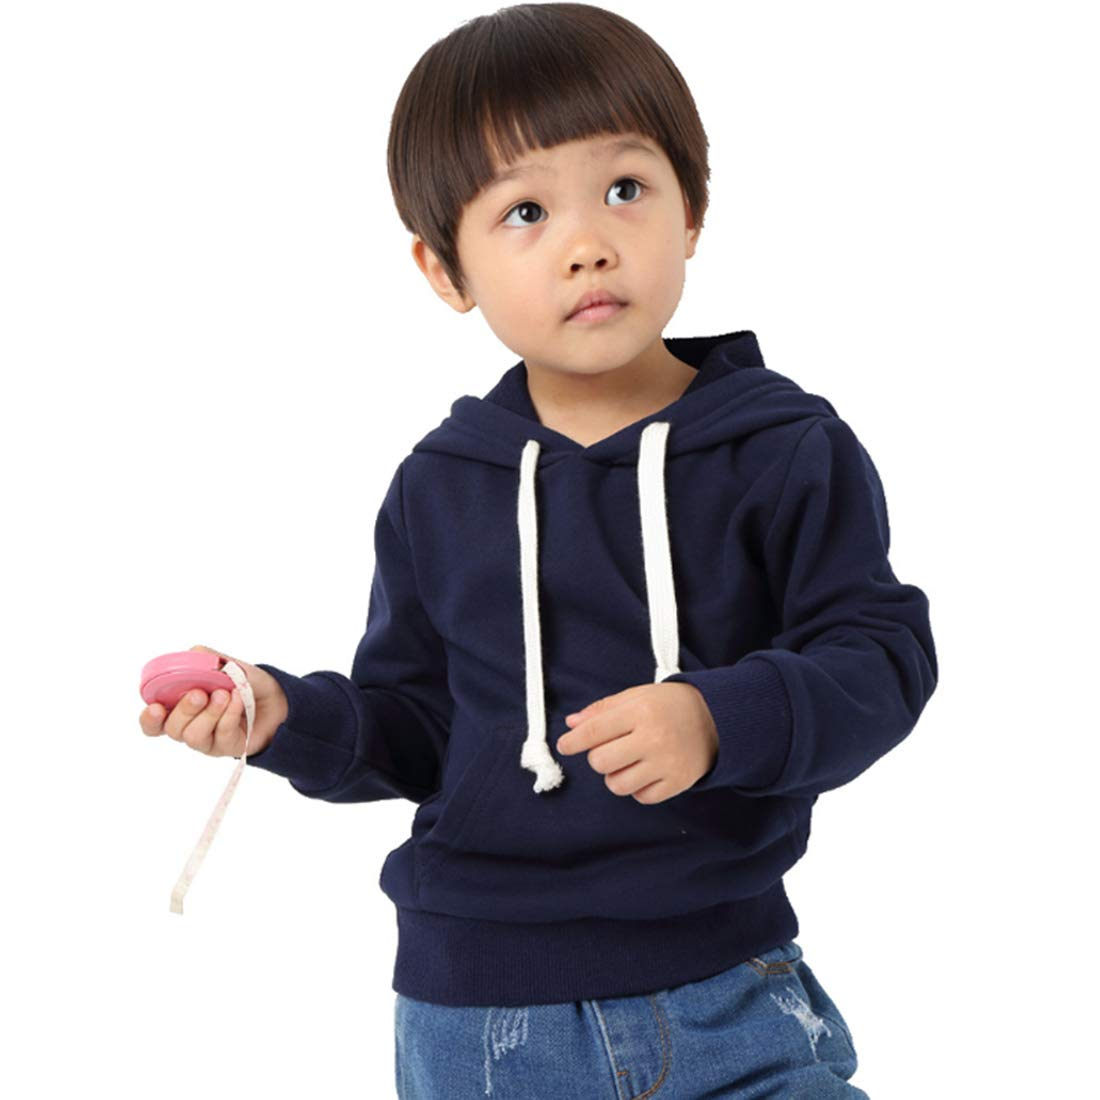 LIELIESTAR Toddler Kids Plain Hoodie Long Sleeve Adustable Drawstring Windproof Sweatshirt with Front Pocket School Holidays Outwear and Size Age 3 to 8 Boys ANG Girls